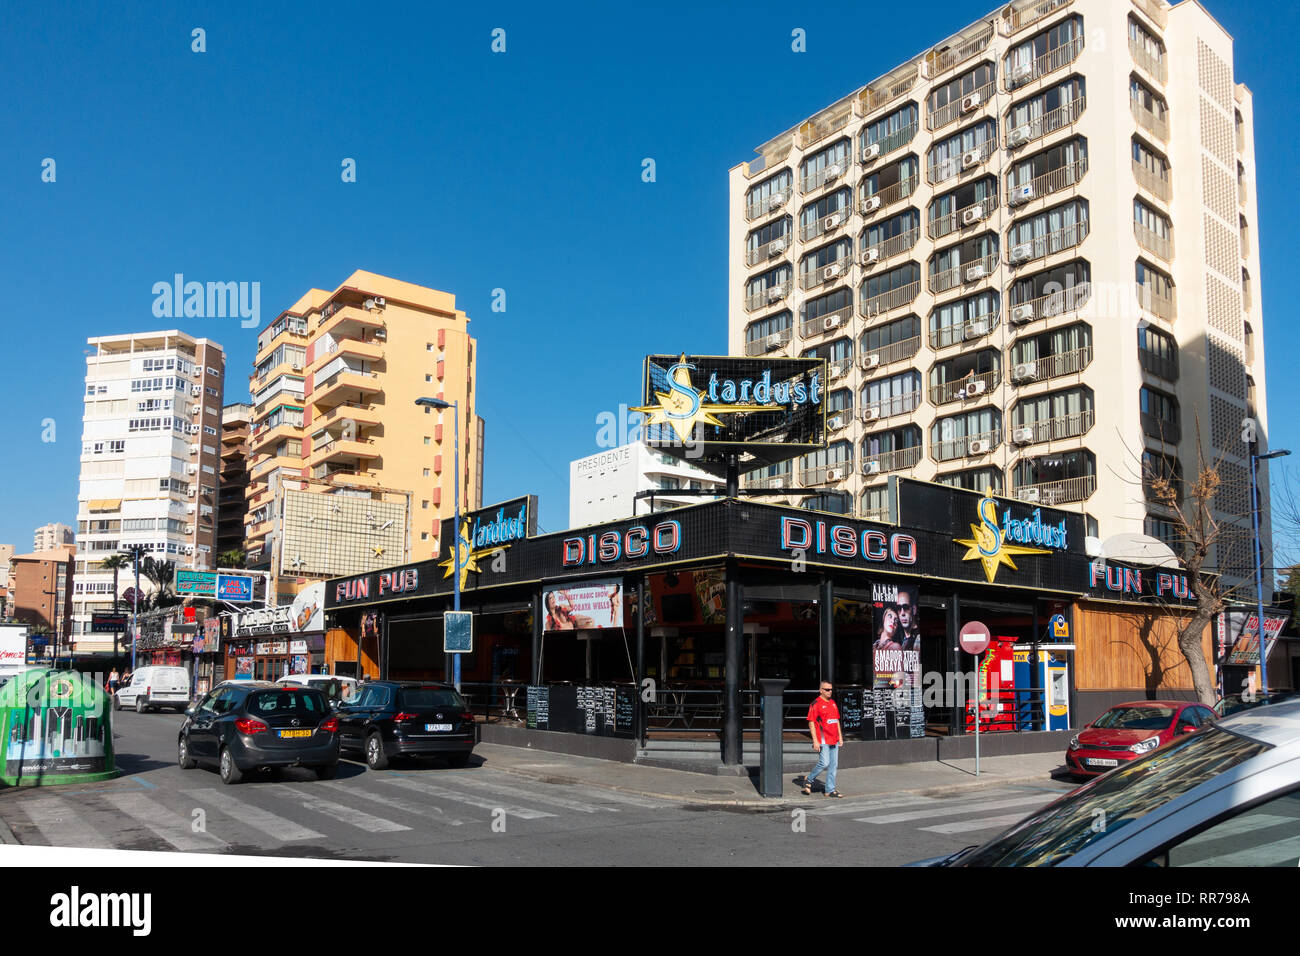 Benidorm, Costa Blanca, Spain, 25th February 2019. Two staff members at the Beachcomber pub in Benidorm New Town on the British square. Two British tourists have been arrested in relation to the alleged attack. Seen here is the Stardust Disco Pub which is not connected to the reported incident.  Credit: Mick Flynn/Alamy Live News Stock Photo